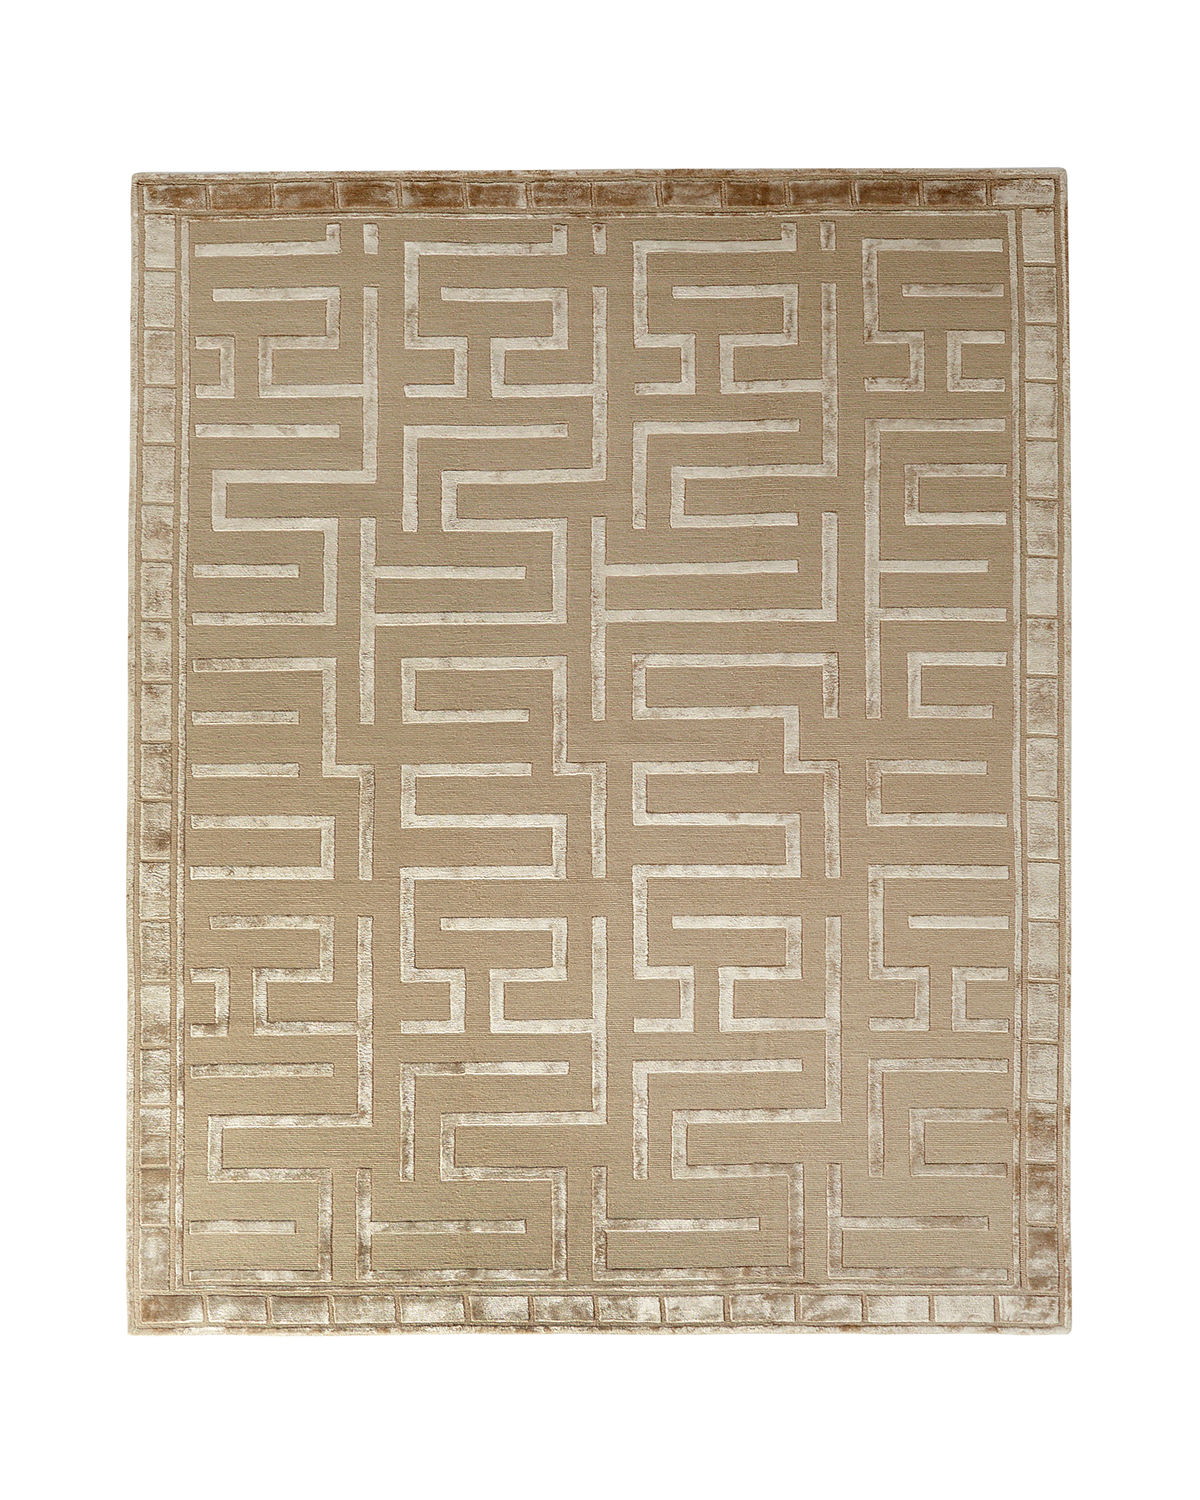 Exquisite Rugs Rowling Maze Hand-Knotted Rug, 8' x 10'